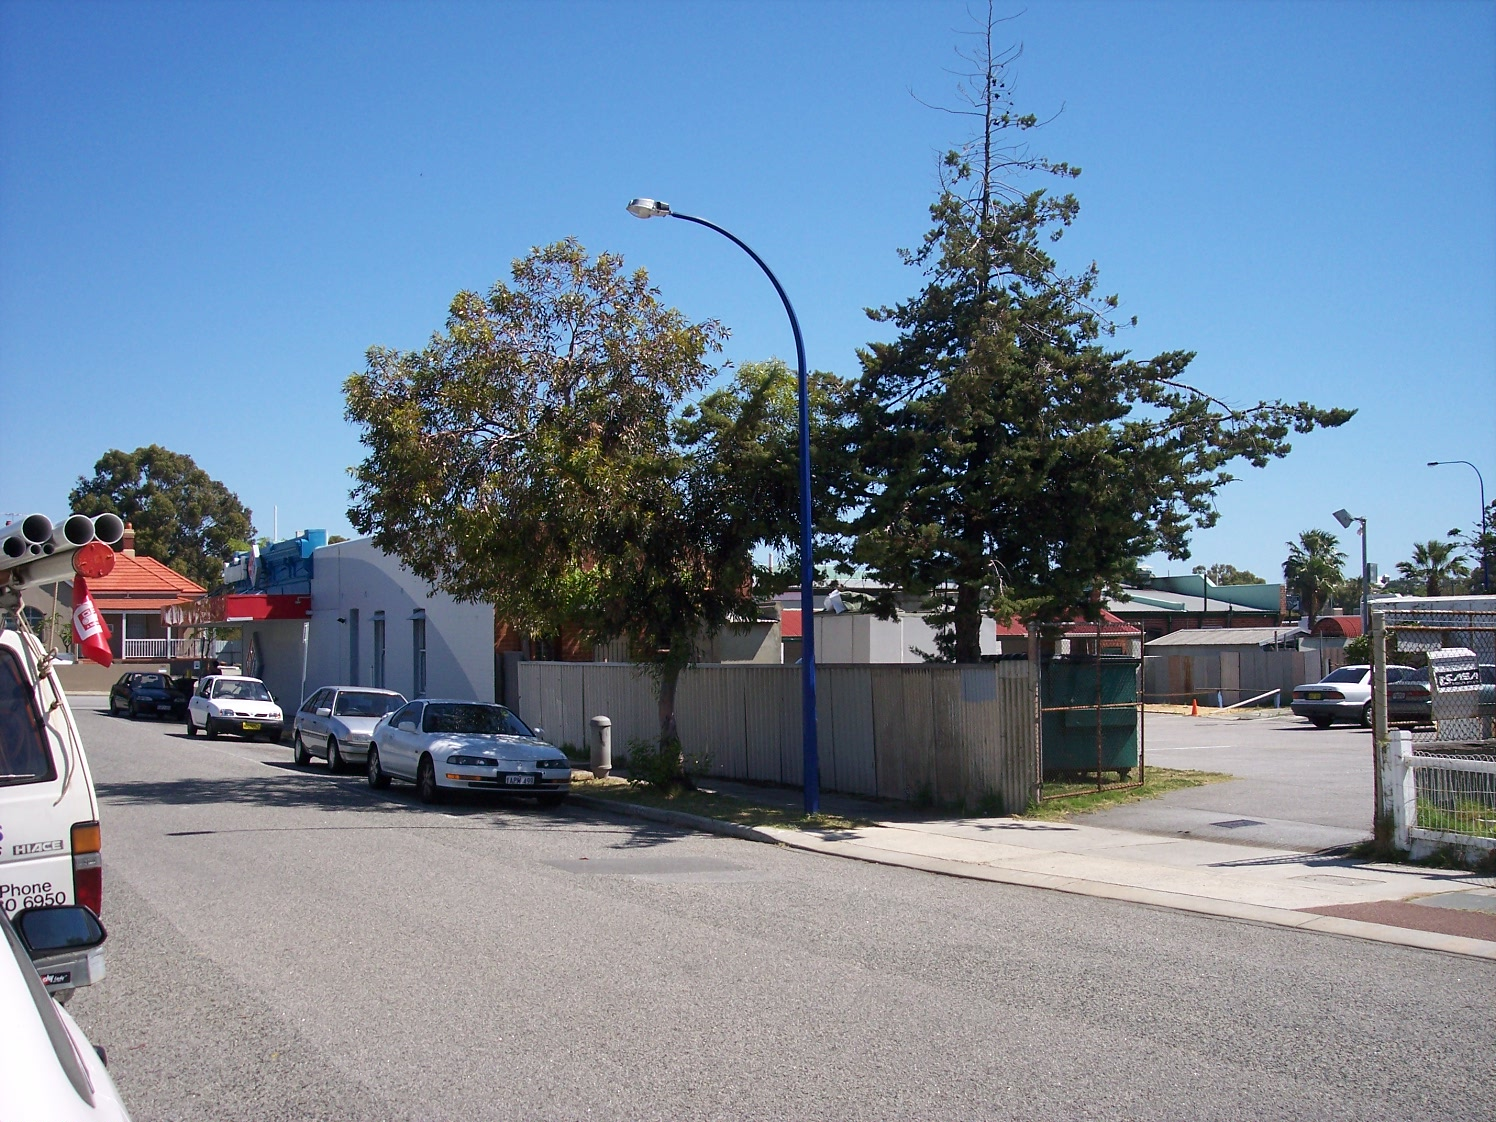 3-11-06 View SW 172 Canning Highway.jpg